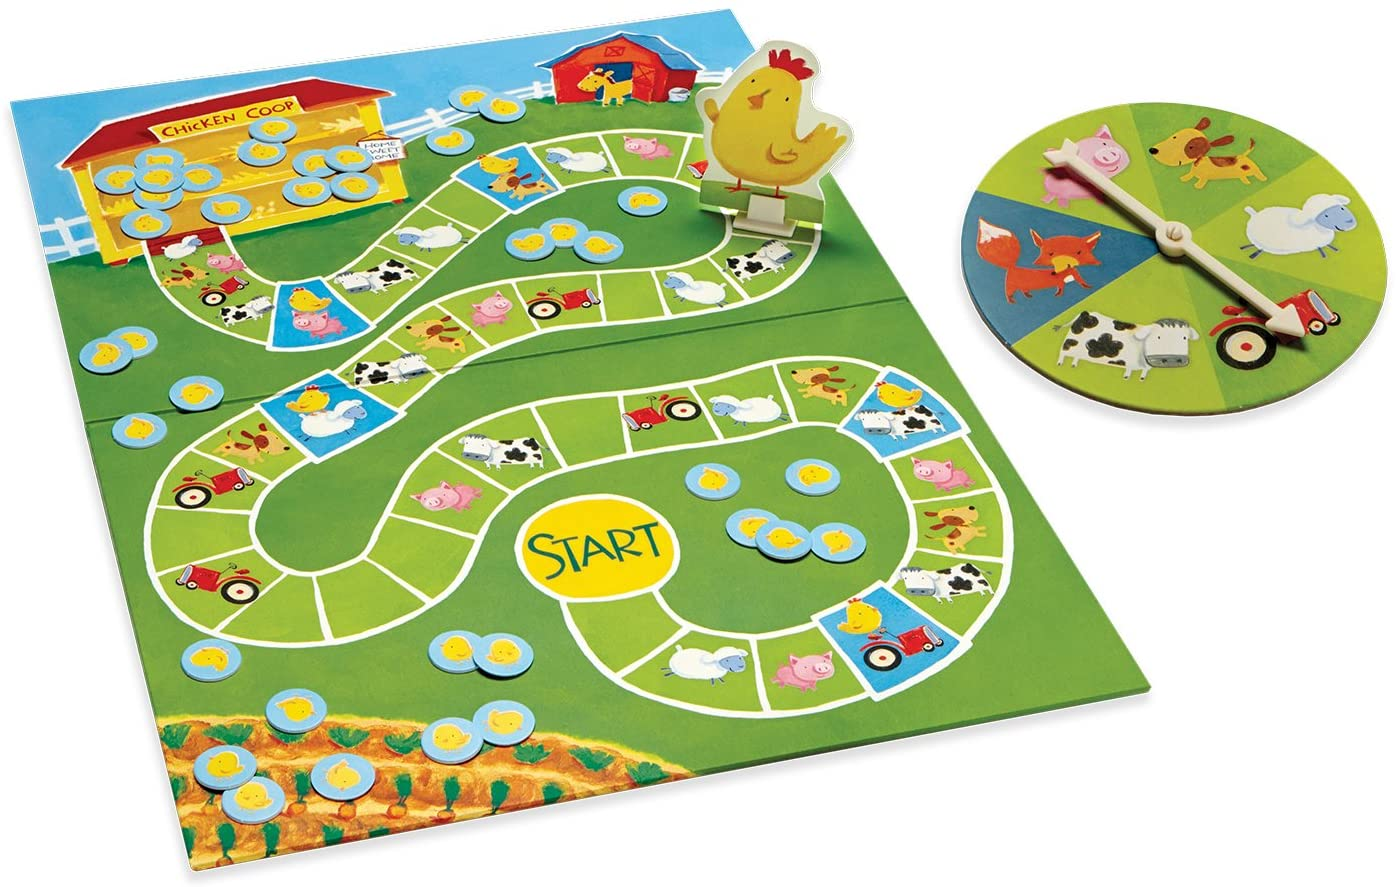 Count Your Chickens Board Game